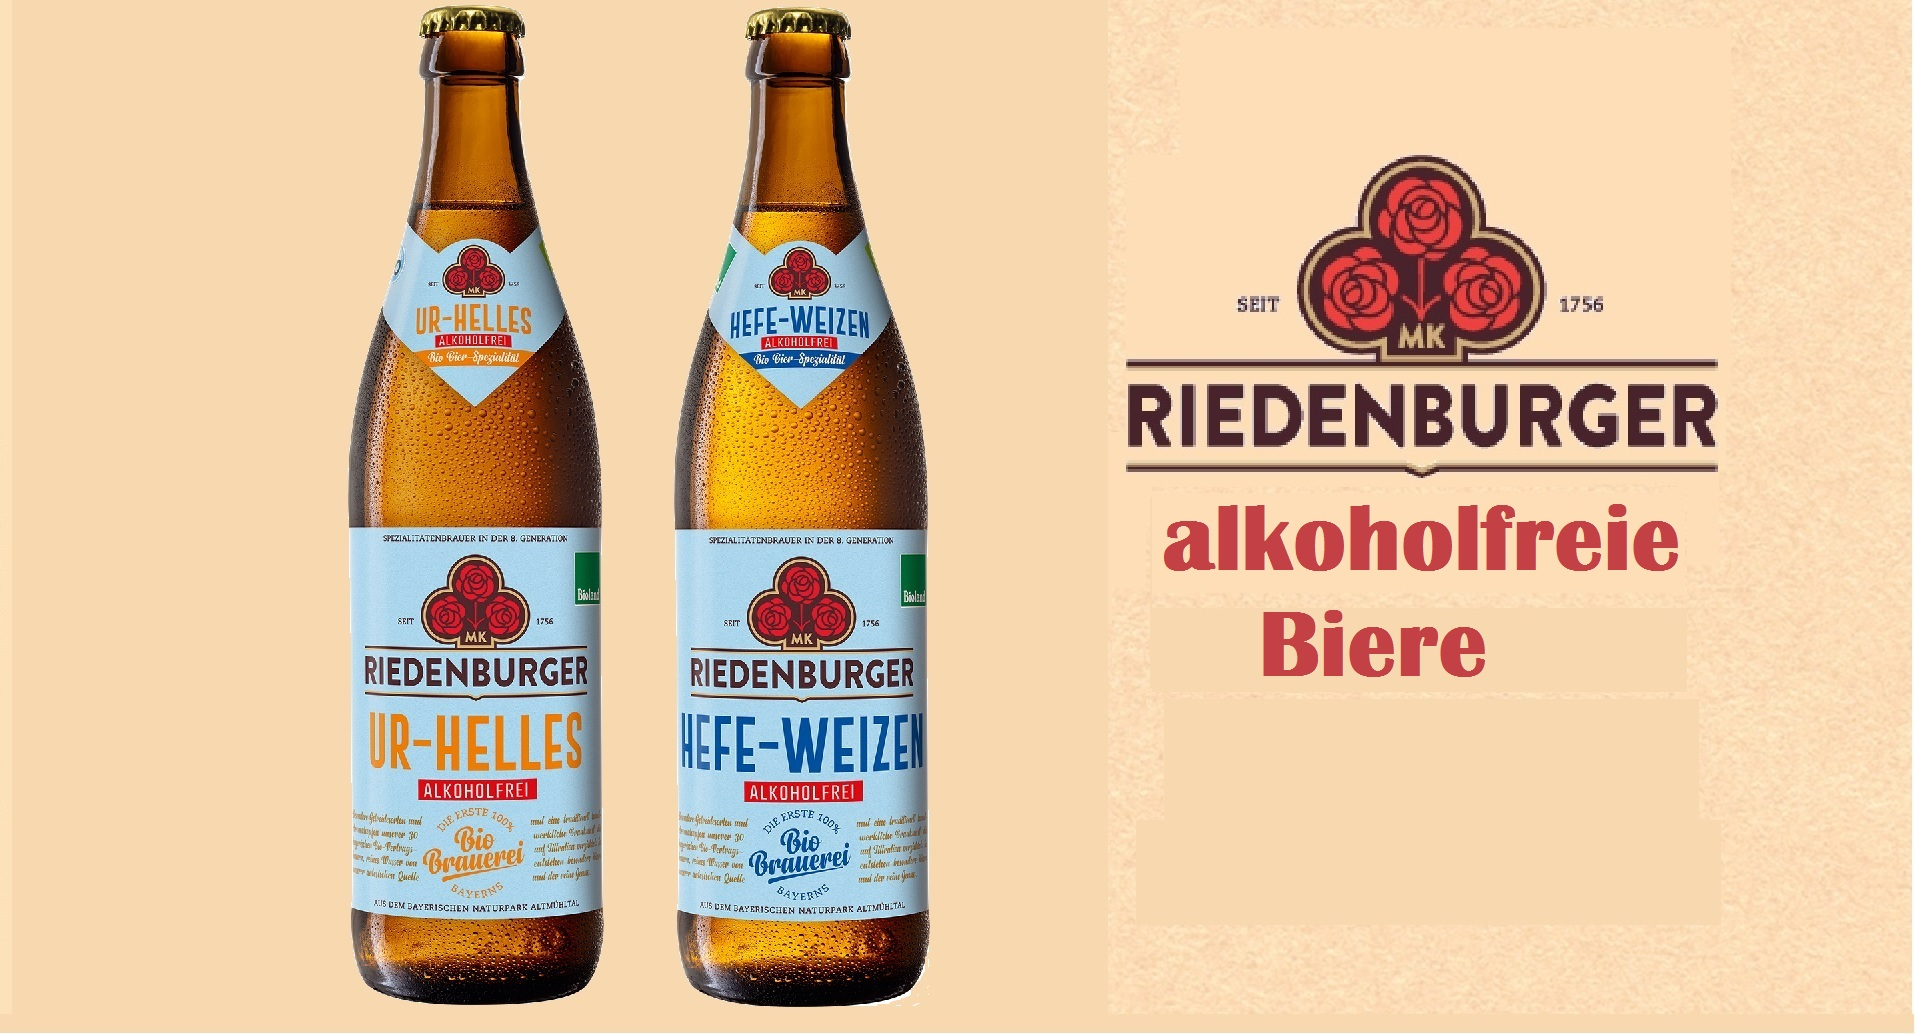 RIEDENBURGER Alkoholfrei-Box